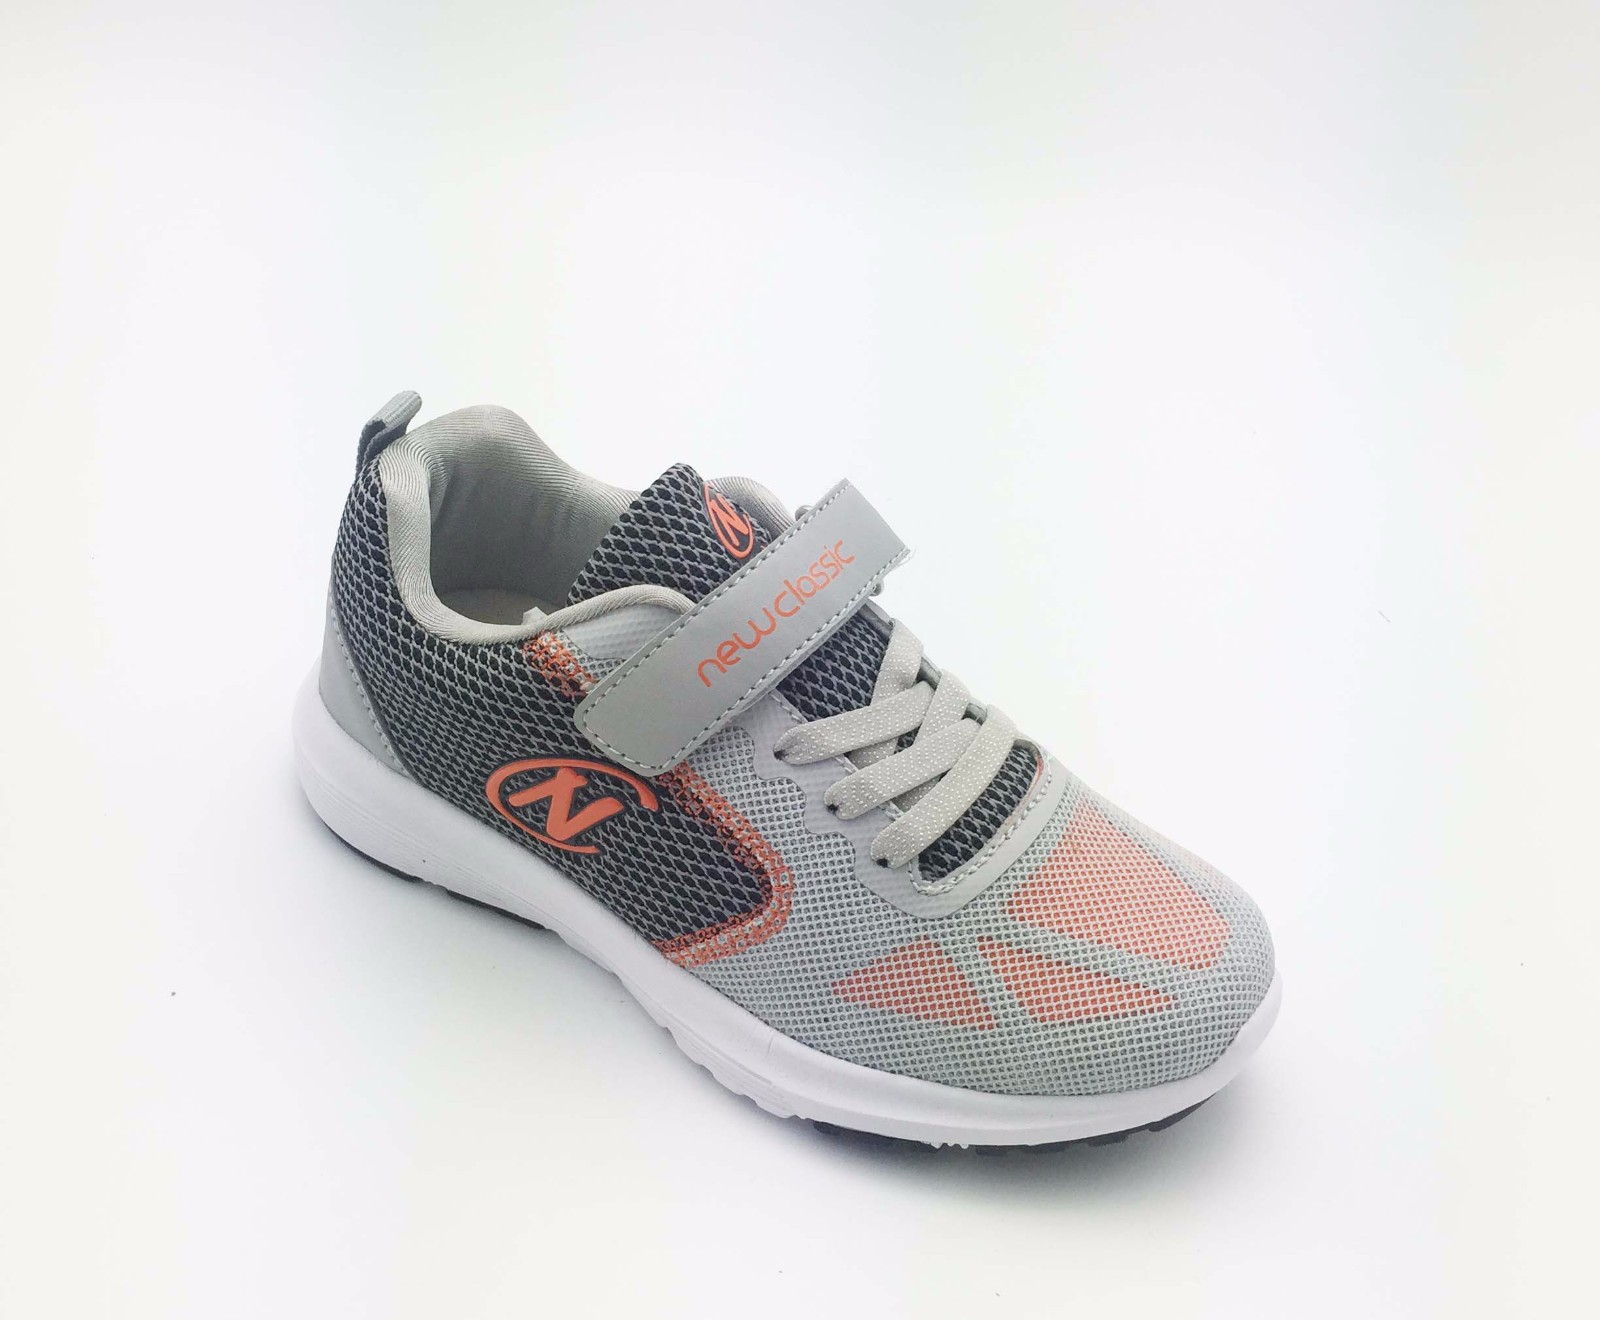 High quality Kids Casual Sneakers Keep Up to Date Flyknit Upper Comfortable and Stylish Boys Shoes Quotes,China Kids Casual Sneakers Keep Up to Date Flyknit Upper Comfortable and Stylish Boys Shoes Factory,Kids Casual Sneakers Keep Up to Date Flyknit Upper Comfortable and Stylish Boys Shoes Purchasing